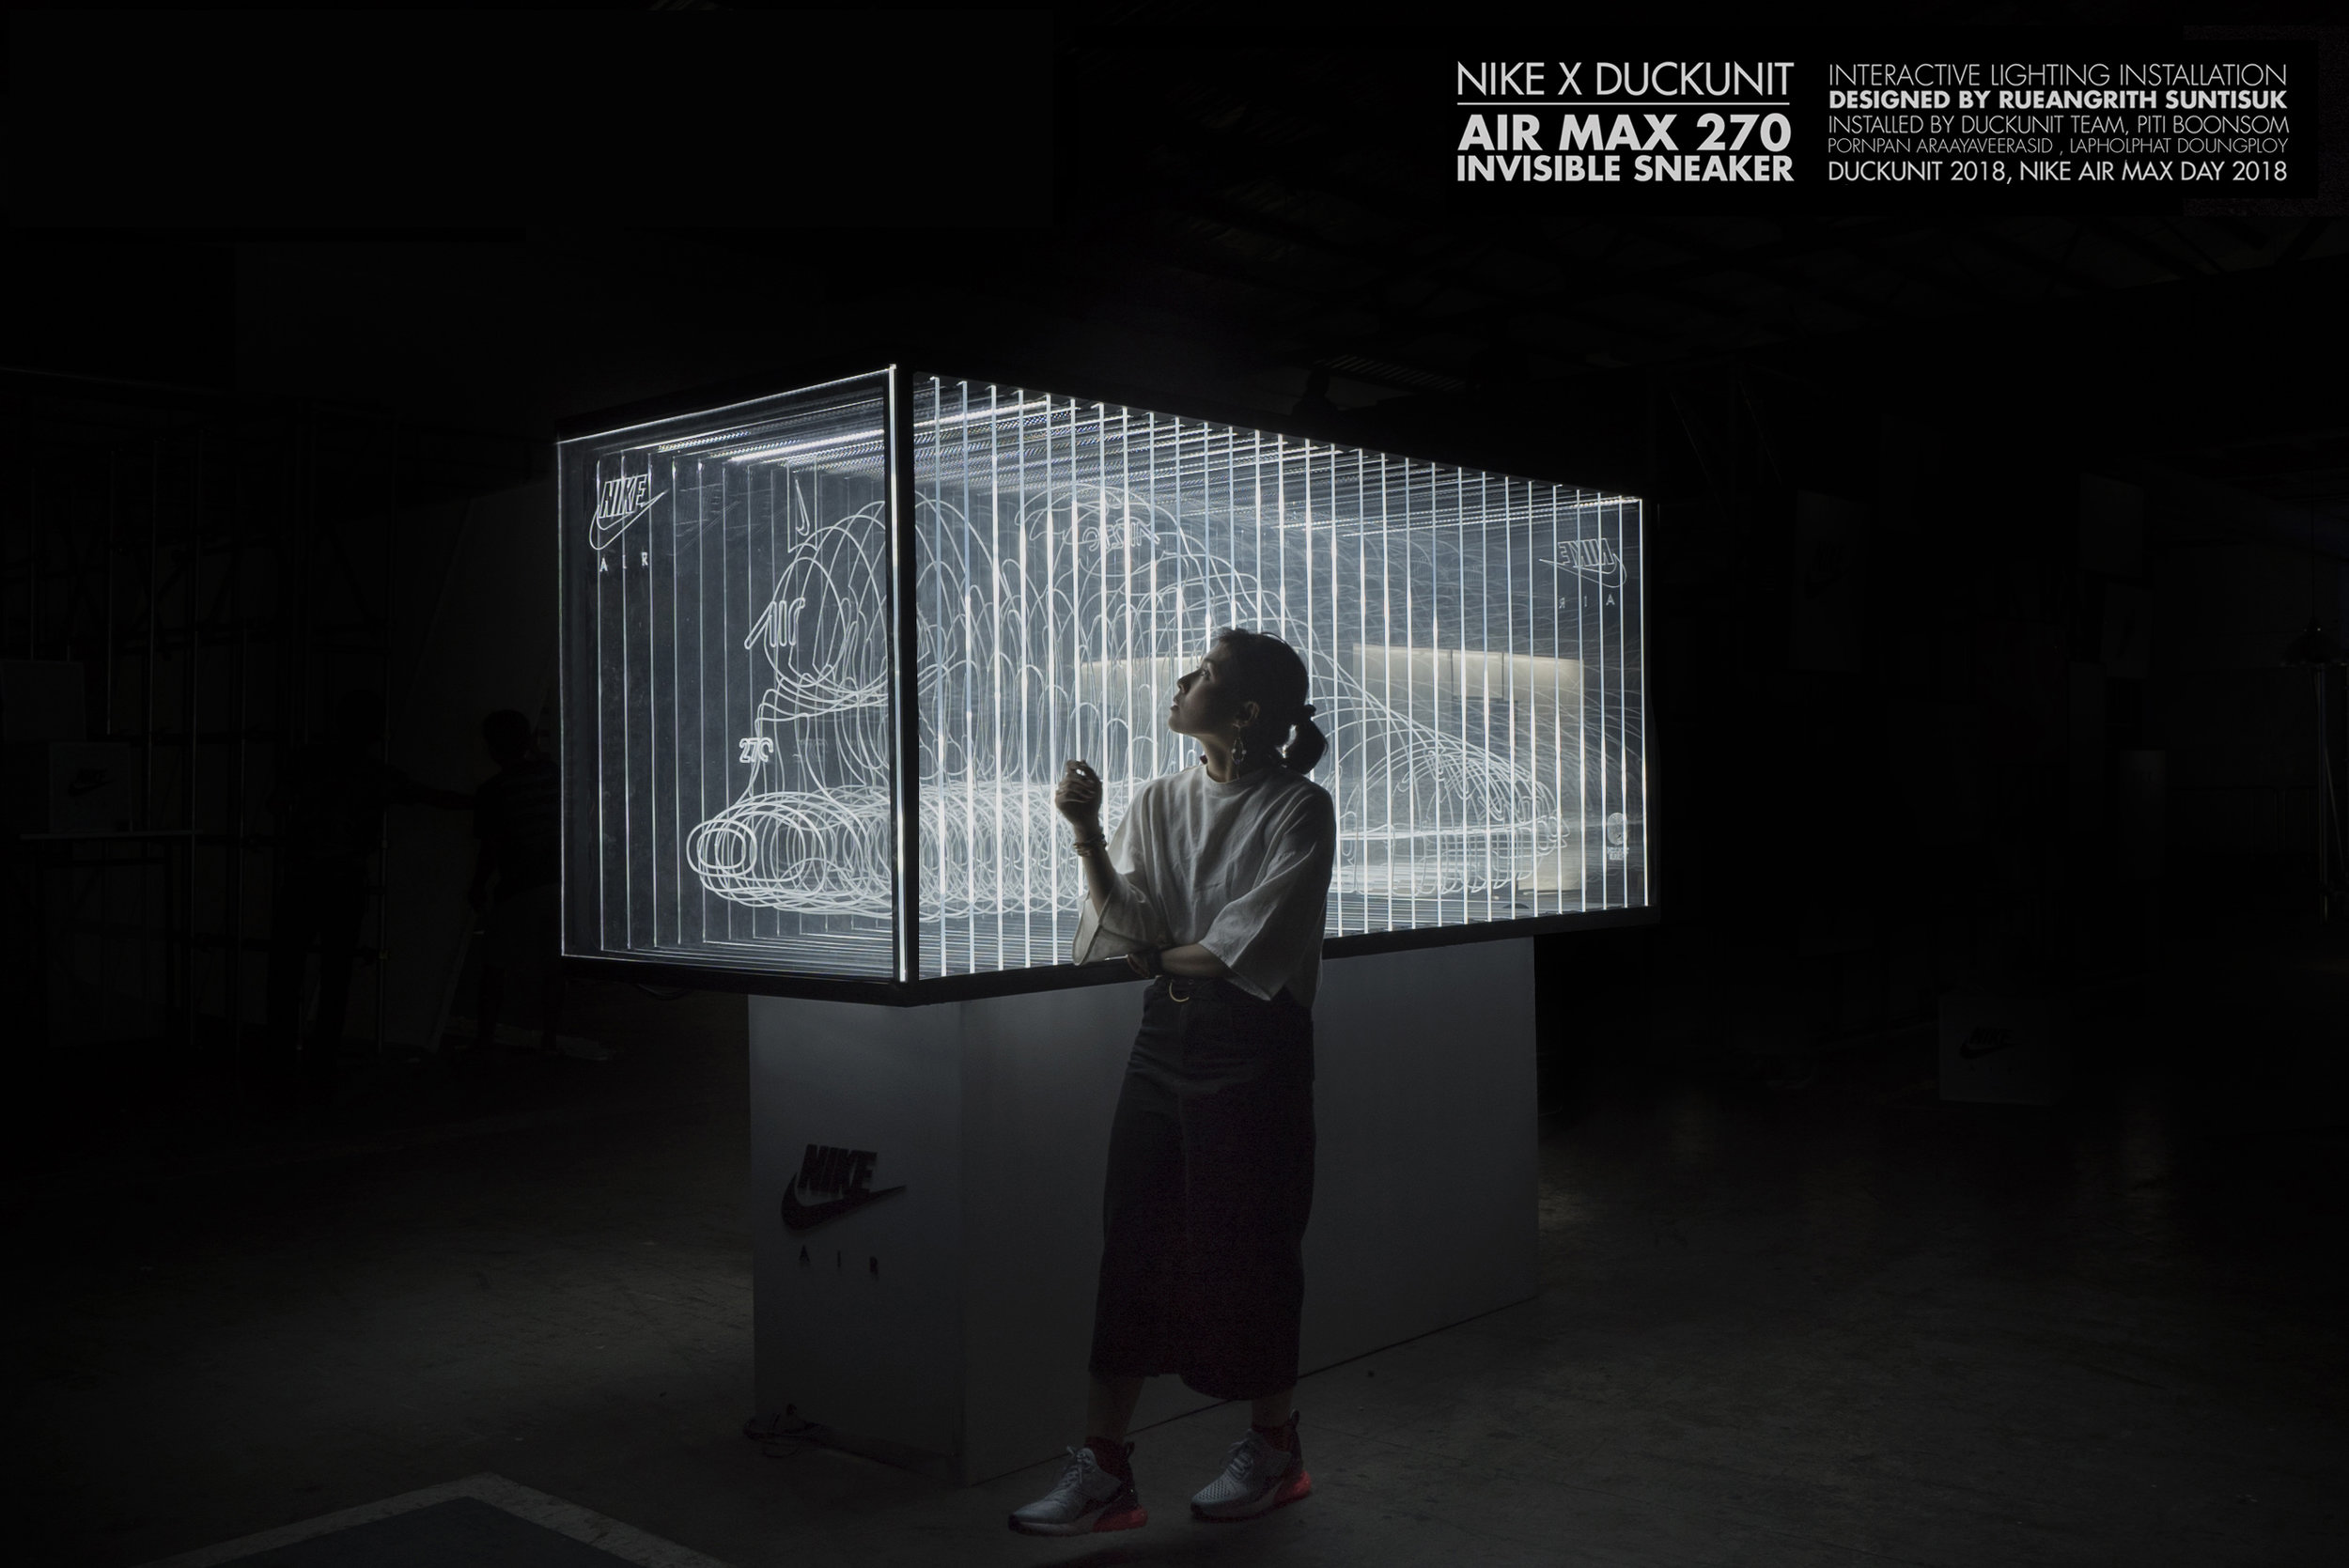 air max interactiv